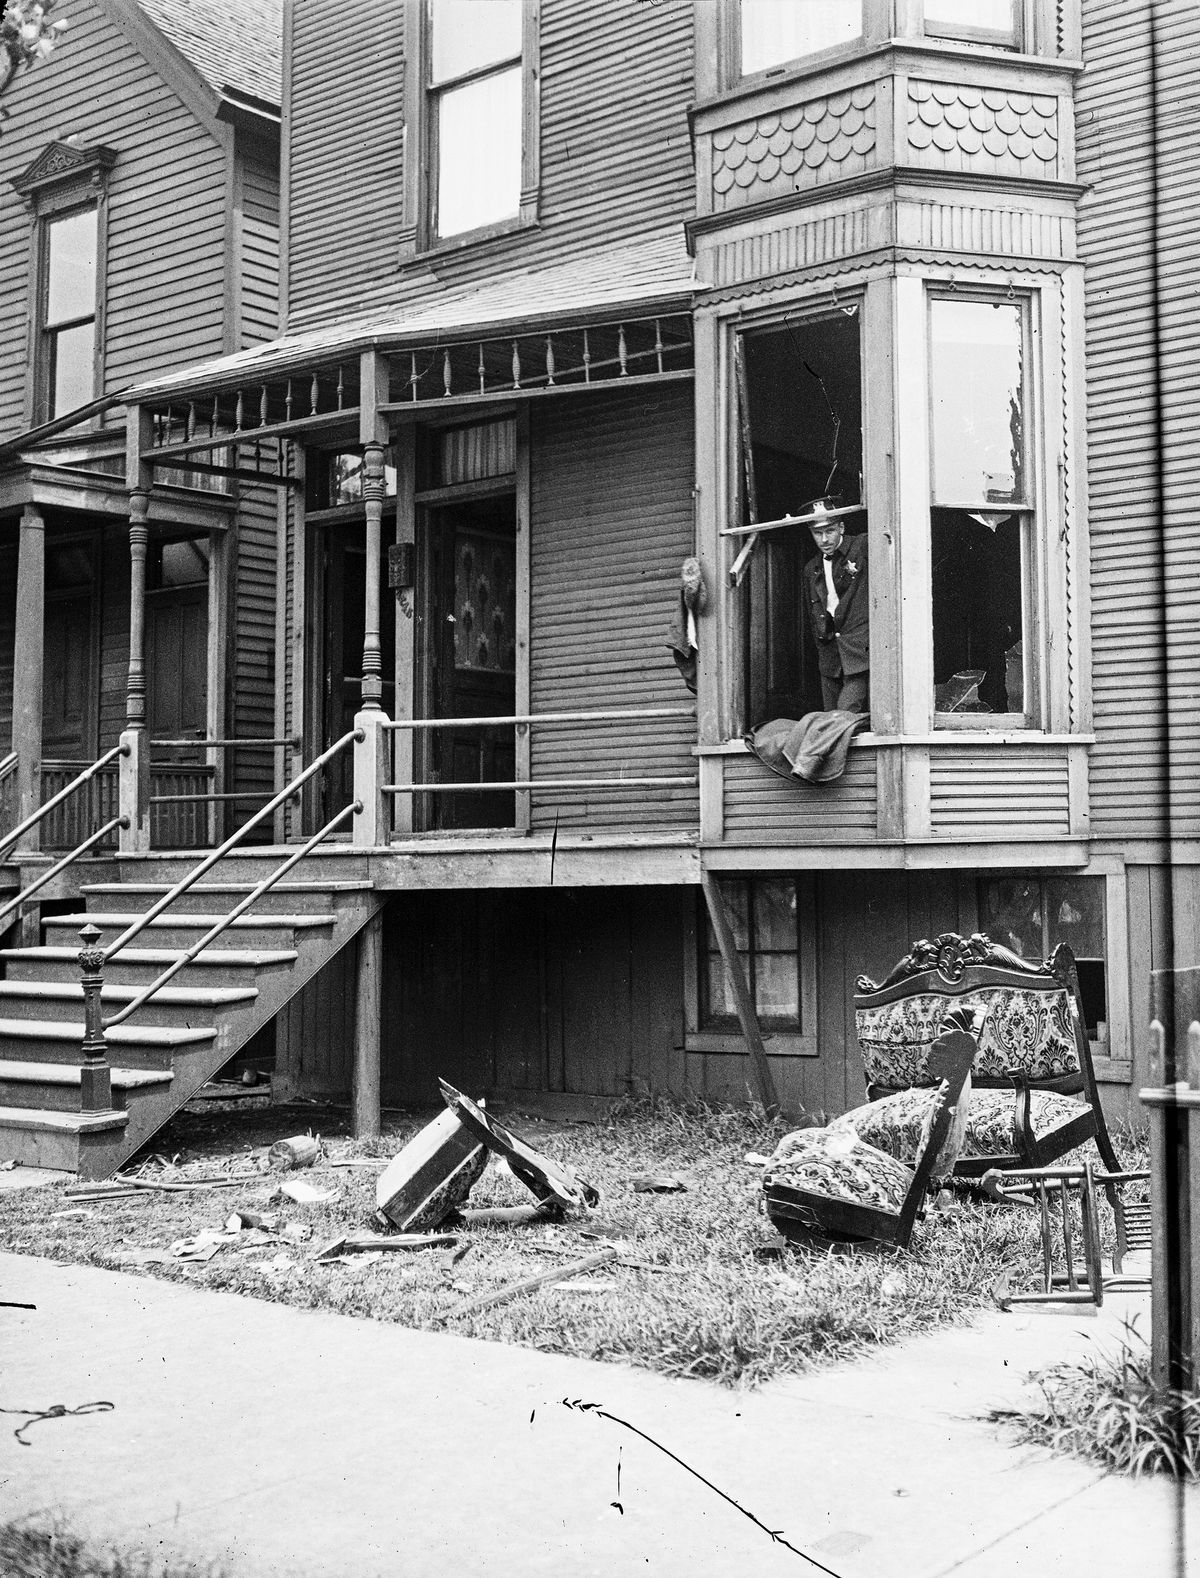 Police look through a broken window of a house during the 1919 race riots in Chicago.